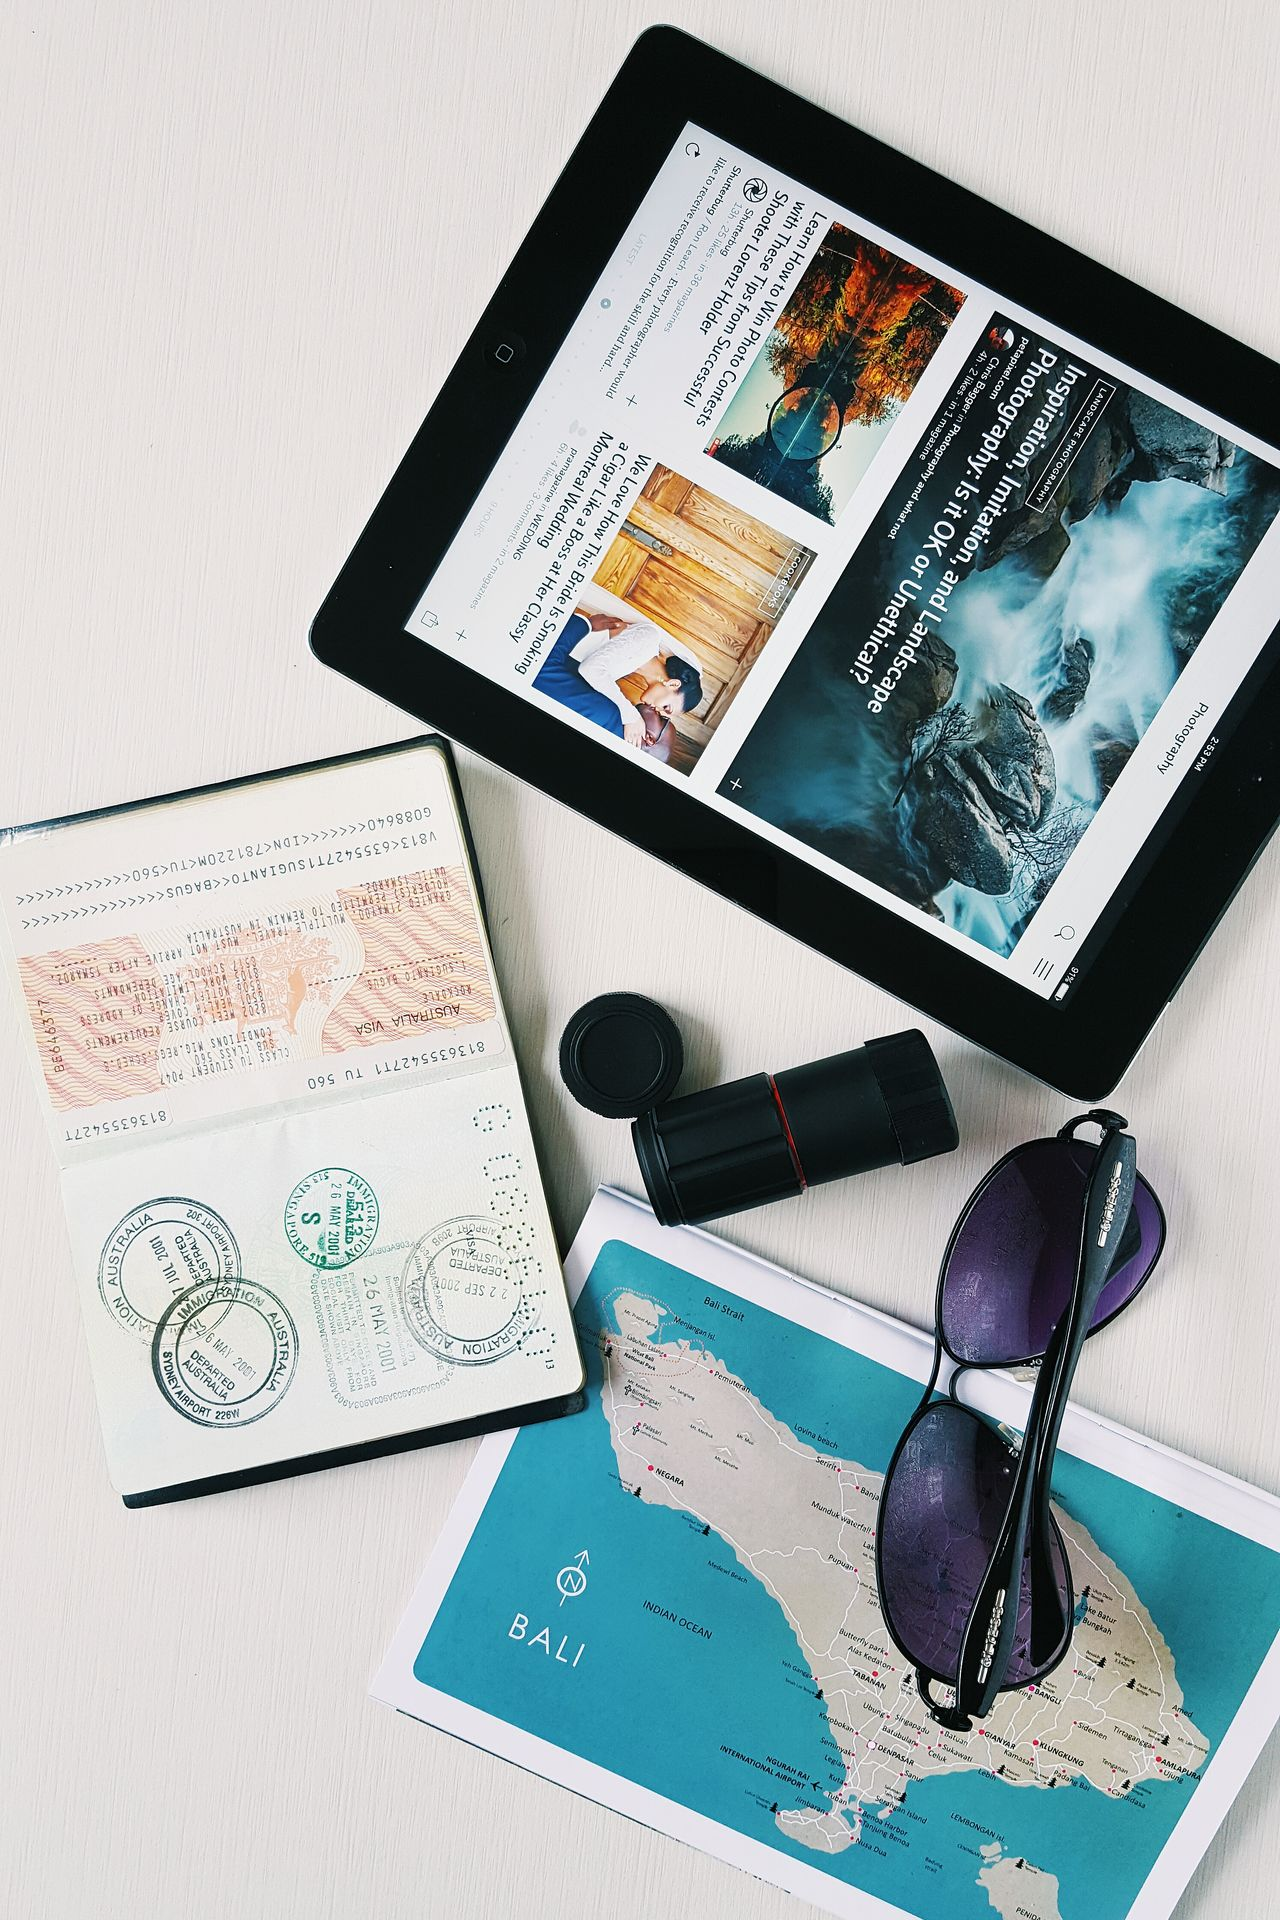 Binoculars Business Finance And Industry Close-up Communication Connection Day Digital Tablet Equipment Indoors  Investment Map Mobile Phone No People Passport Portability Portable Information Device Smart Phone Sun Glasses Technology Wireless Technology